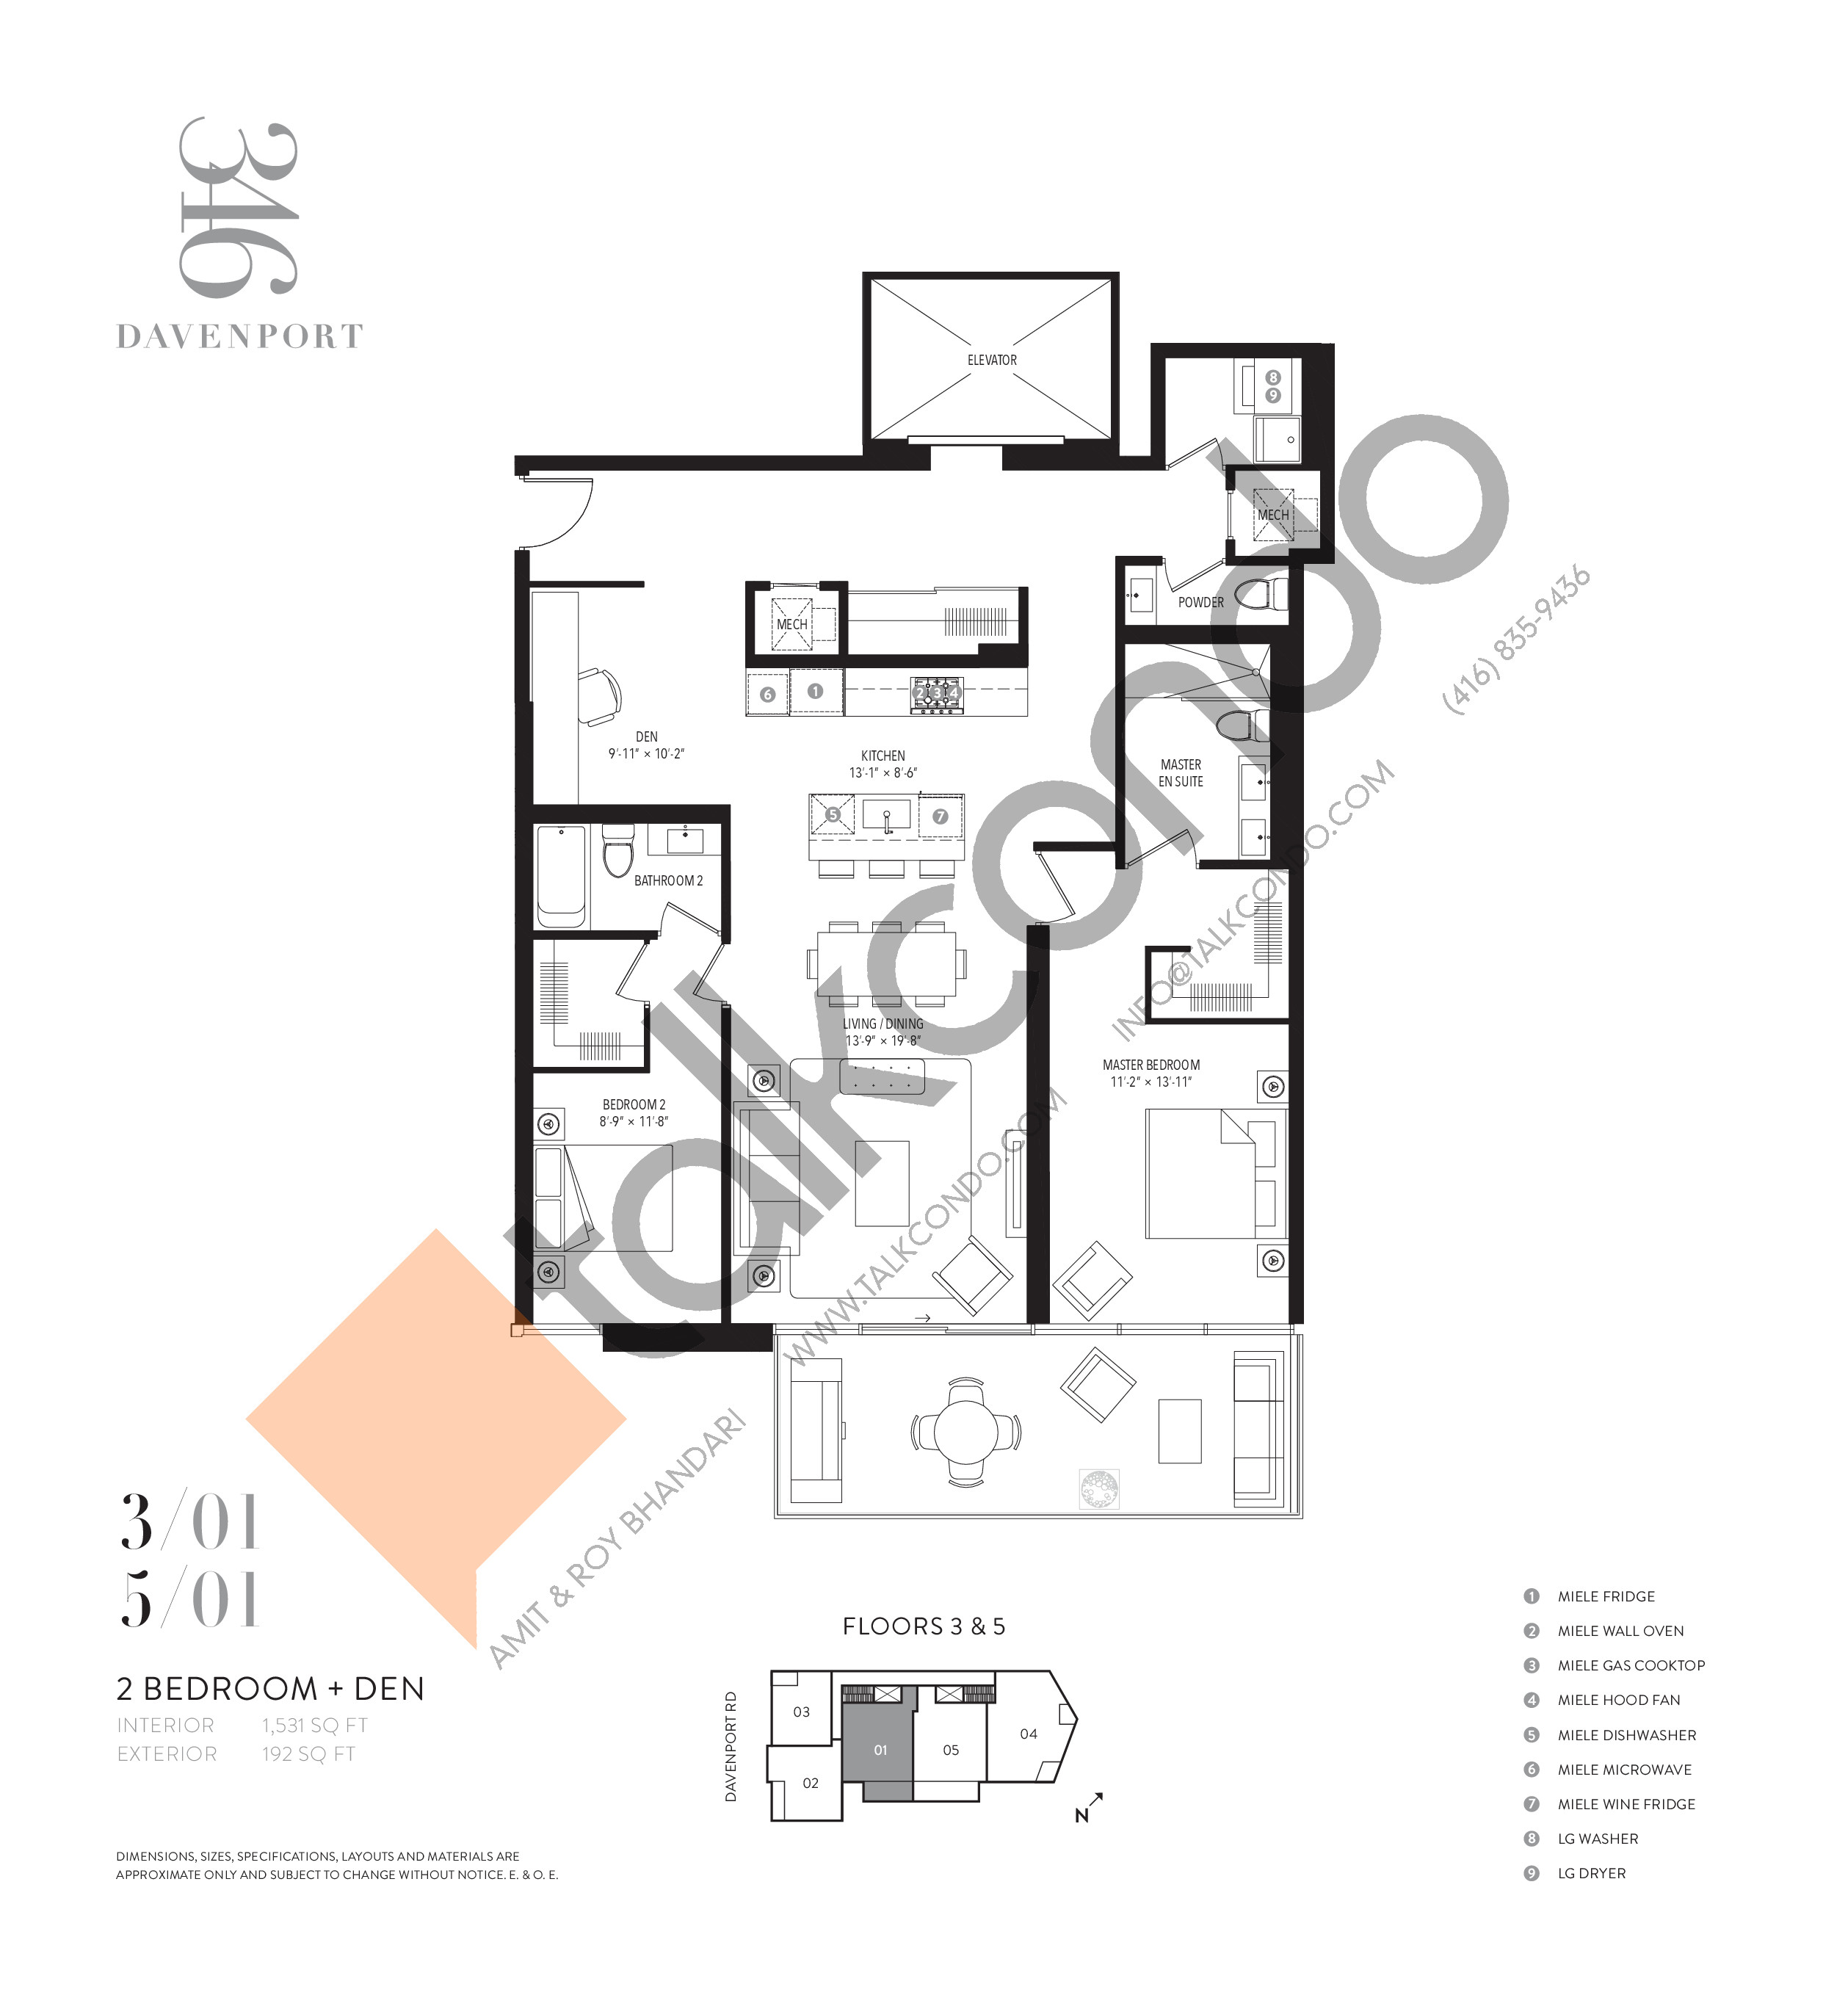 301 Floor Plan at 346 Davenport Condos - 1531 sq.ft